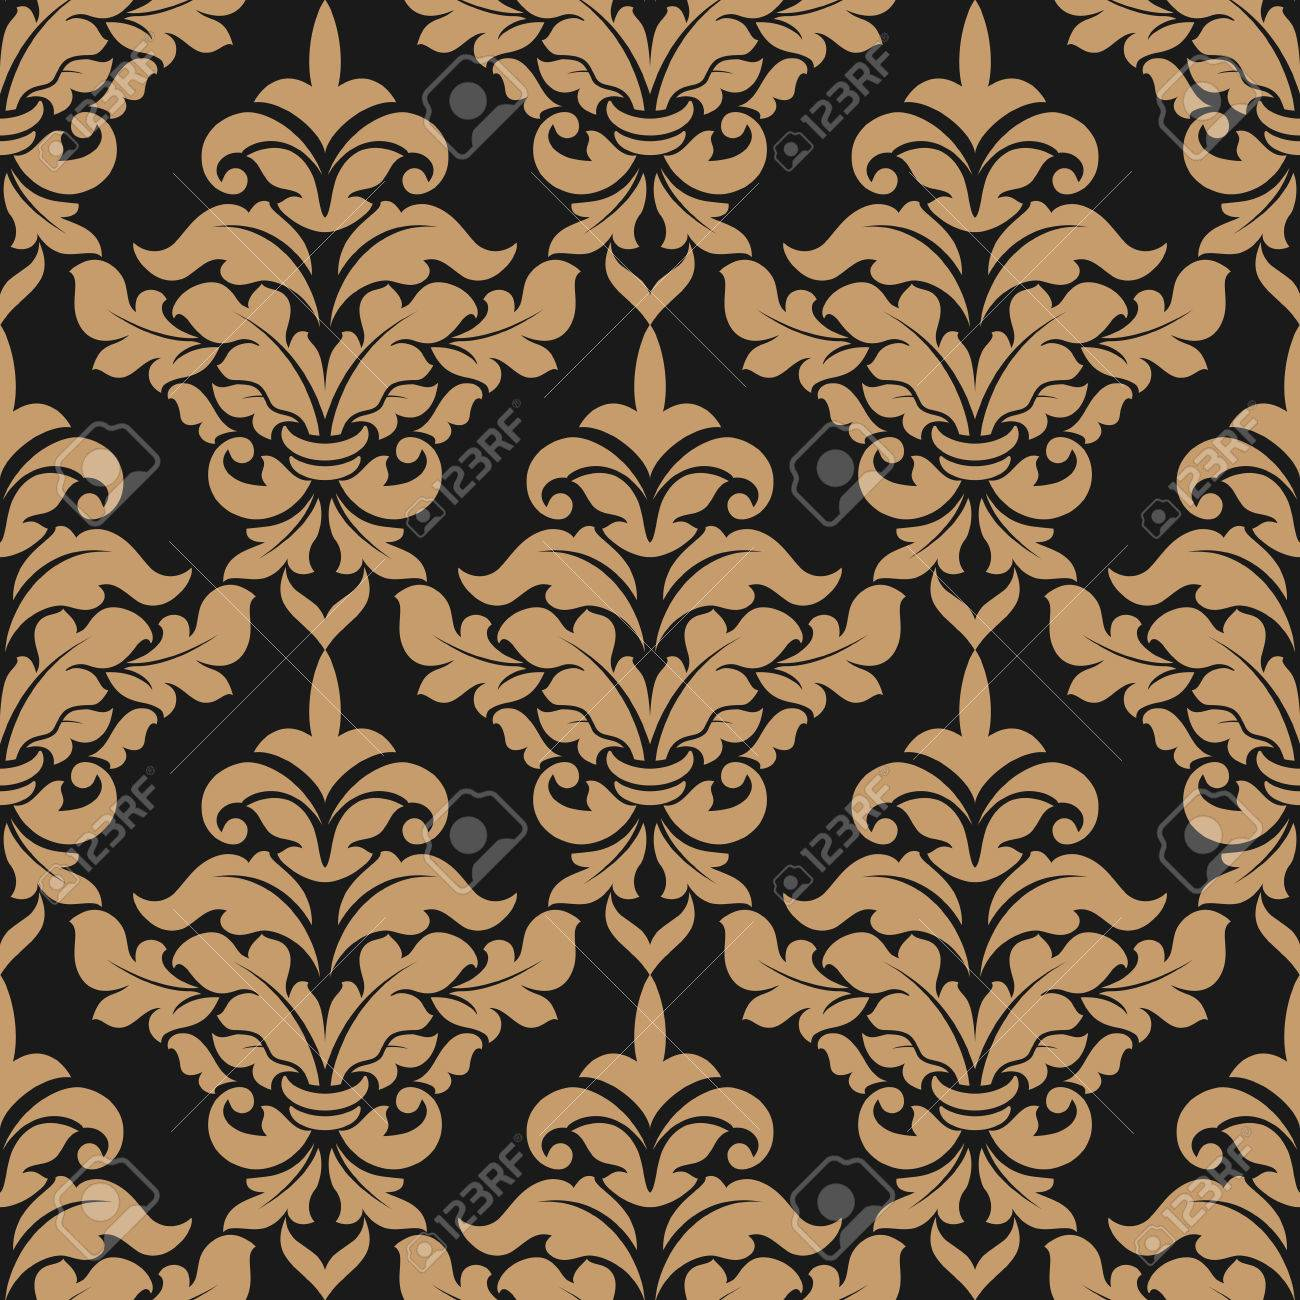 Heavy Damask Style Seamless Pattern With Large Bold Floral Motifs